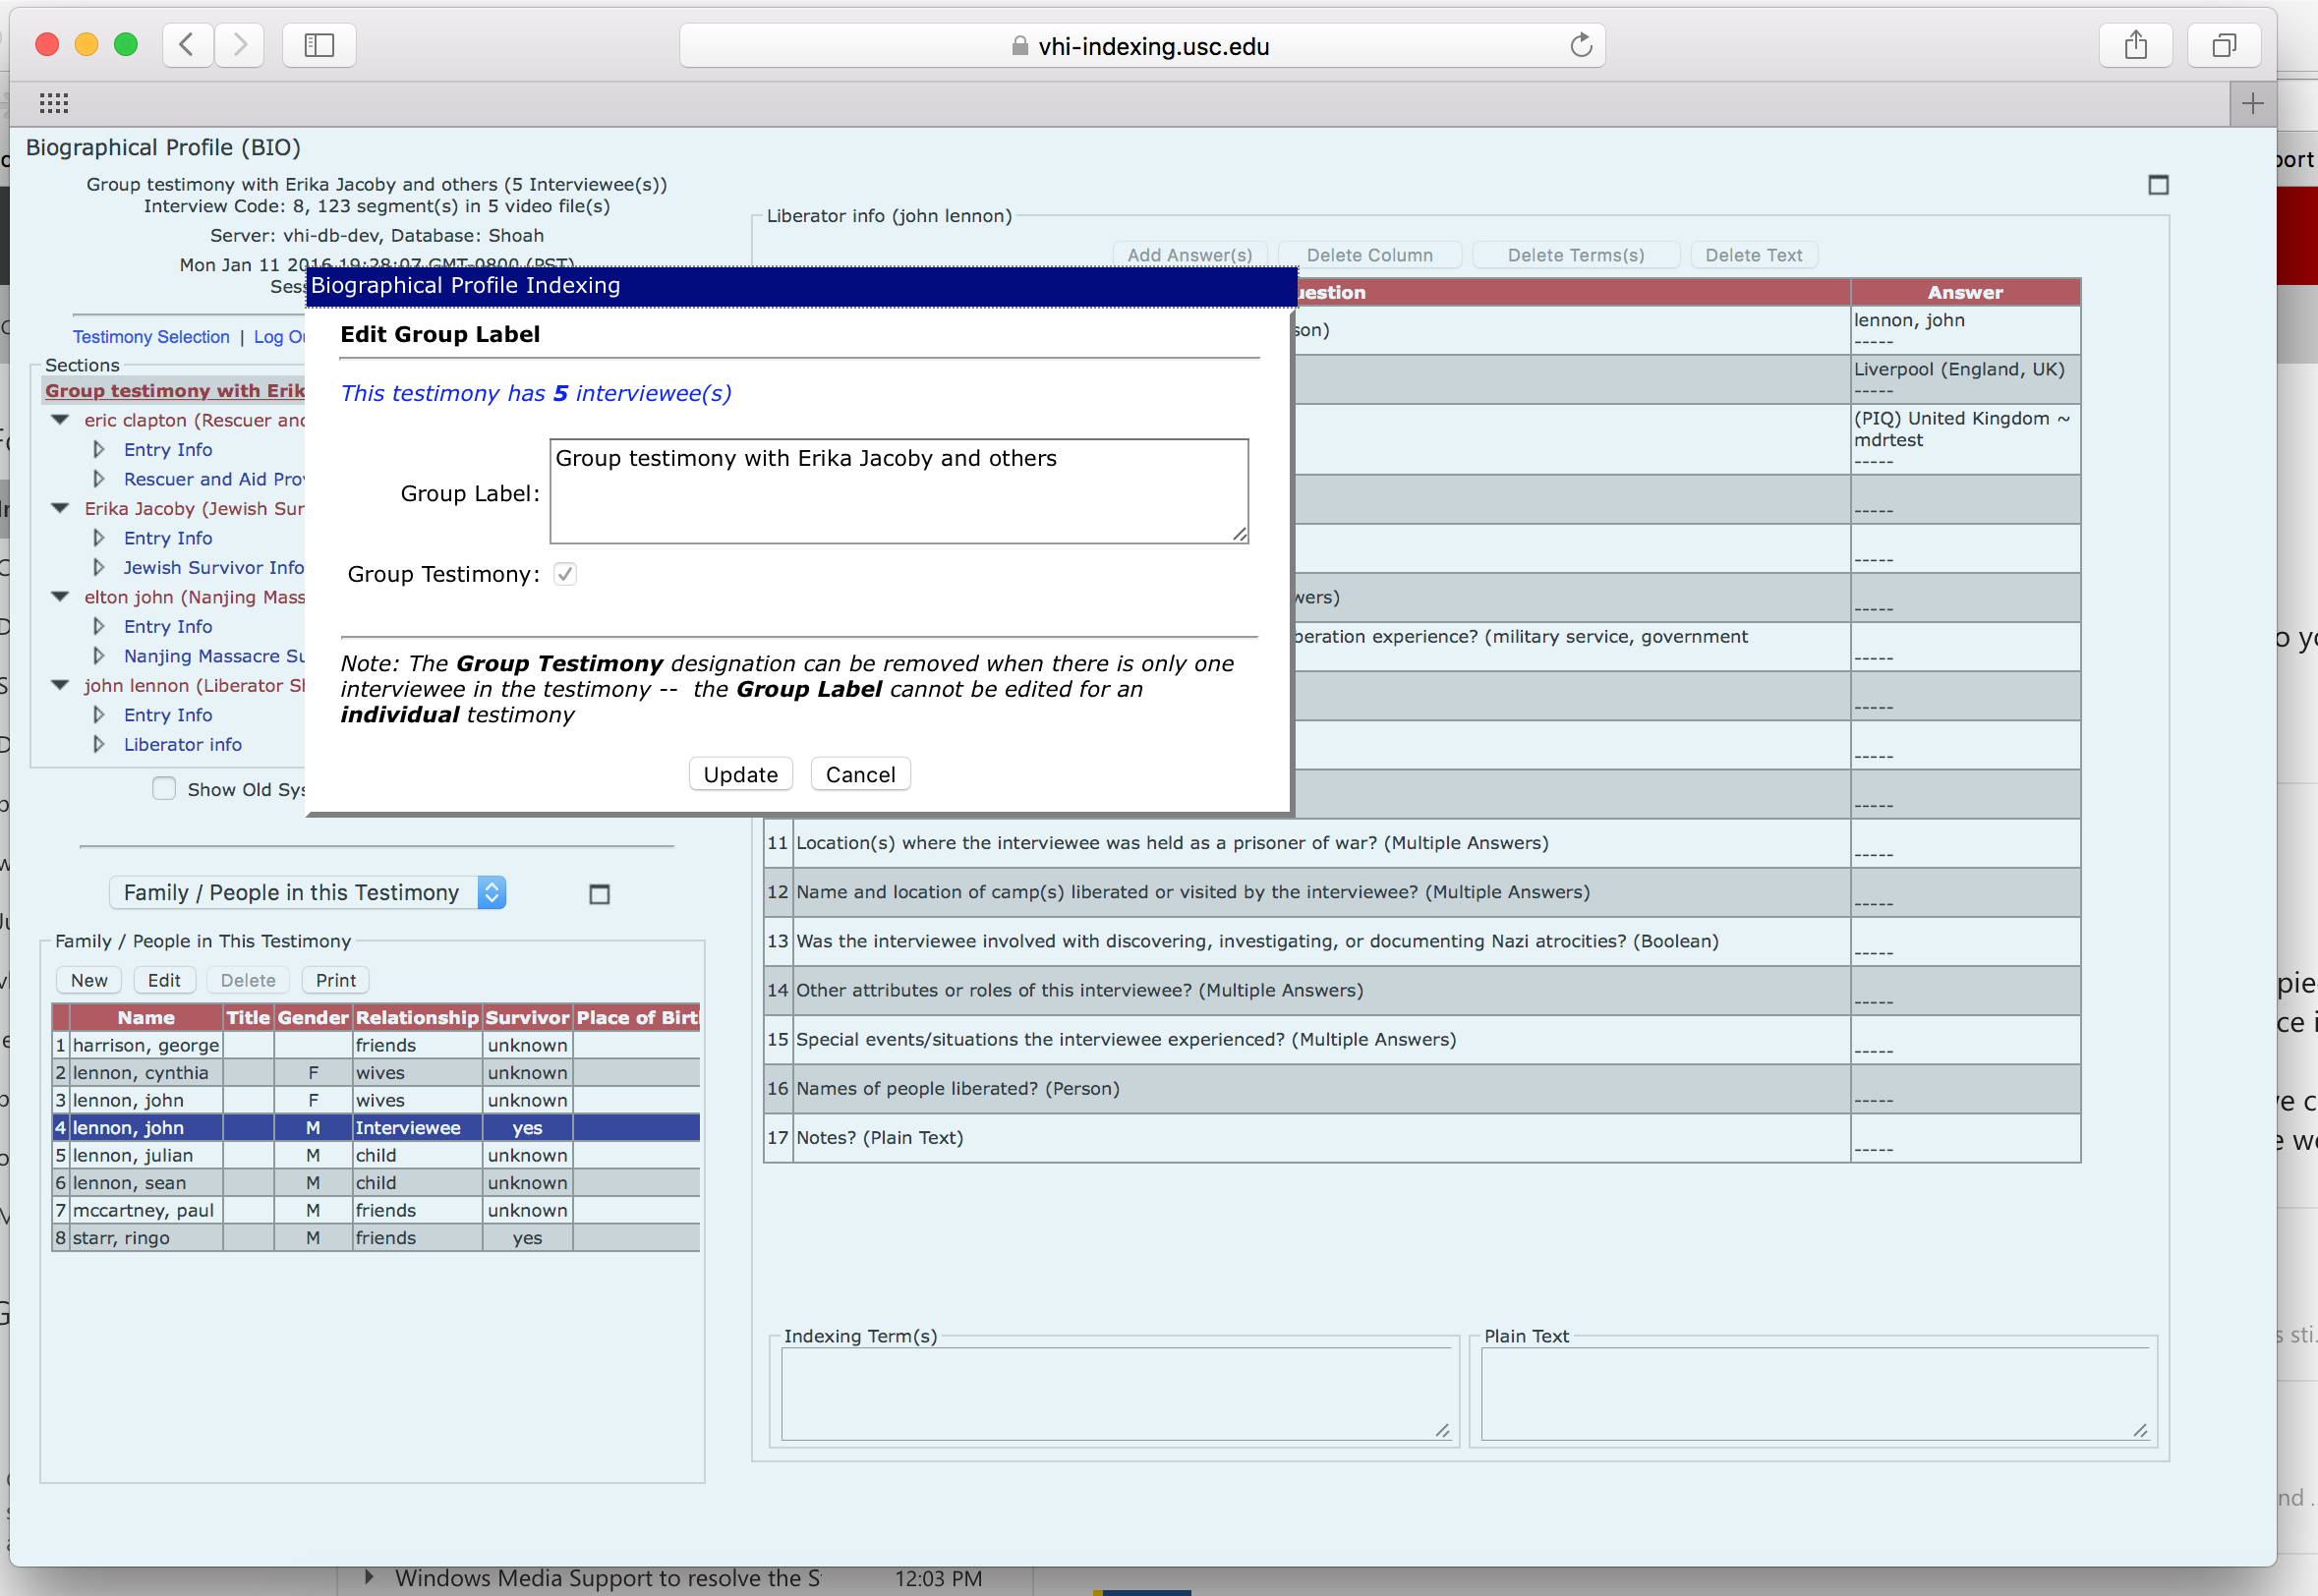 Screenshot of indexing interface shows how an indexer can create a Group Testimony